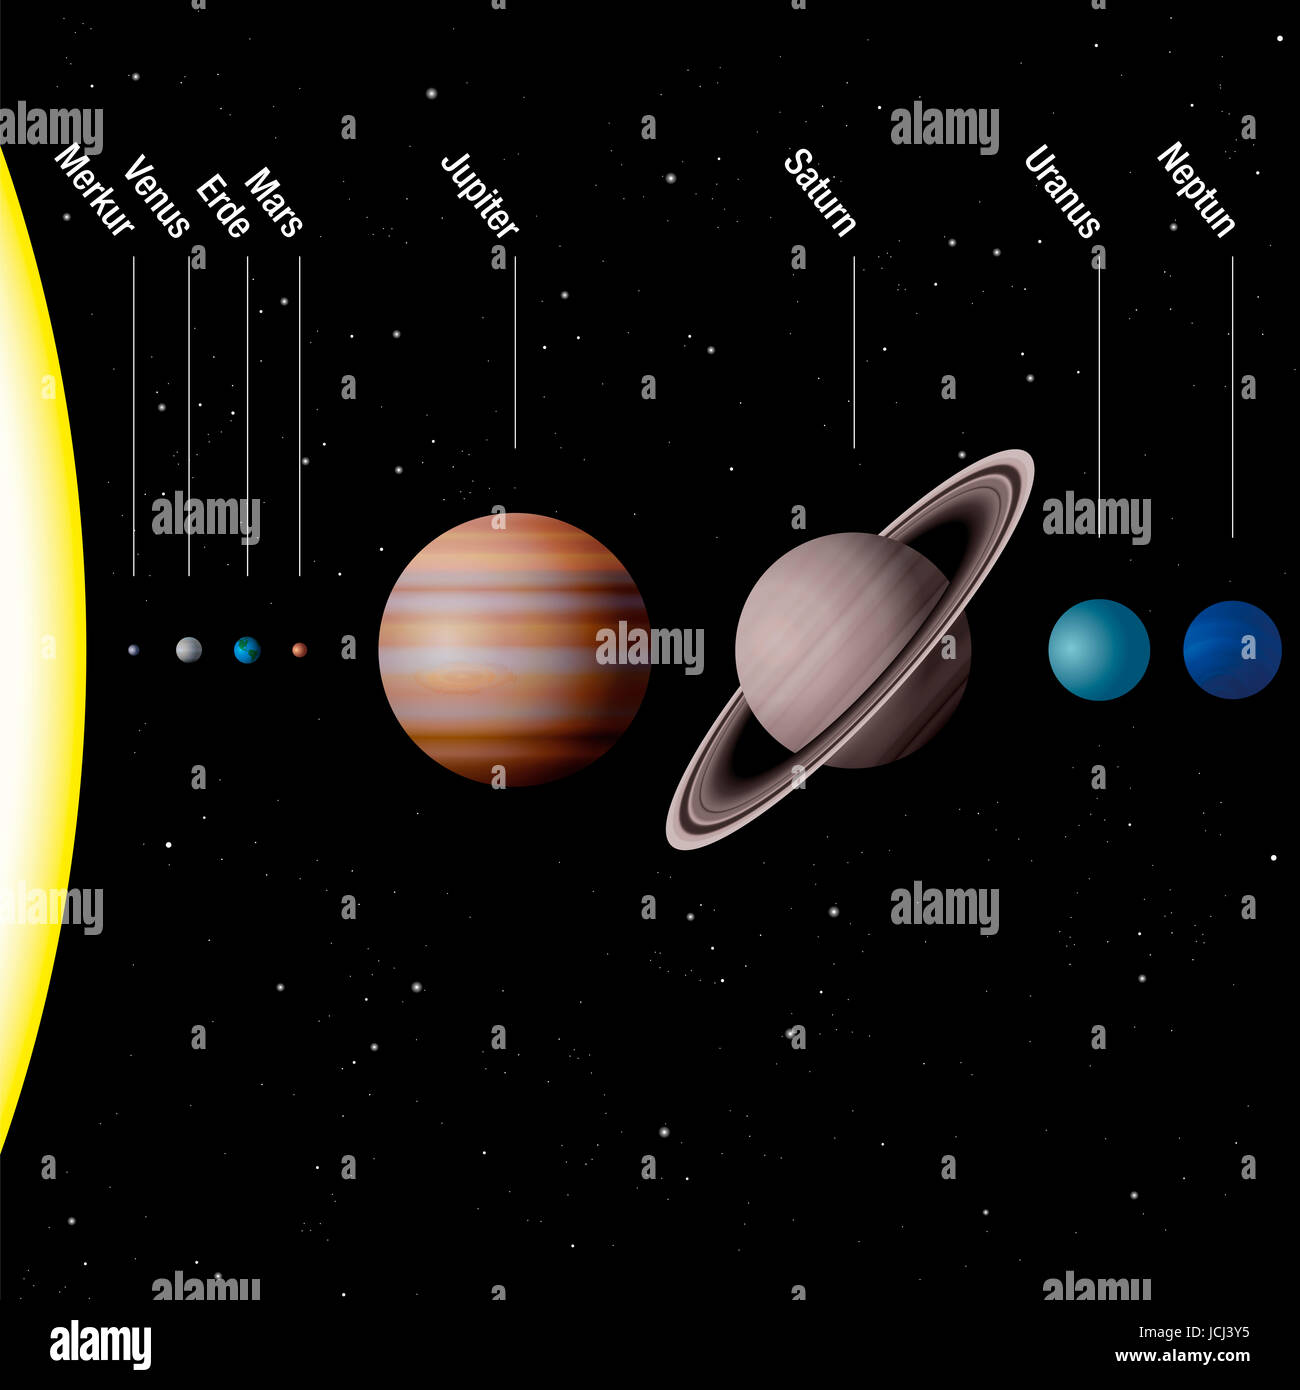 Galaxy Saturn Schematic Trusted Wiring Diagrams Turbo Planets Of Our Solar System True To Scale Sun And Schematics With Dimensions Drawing Engine